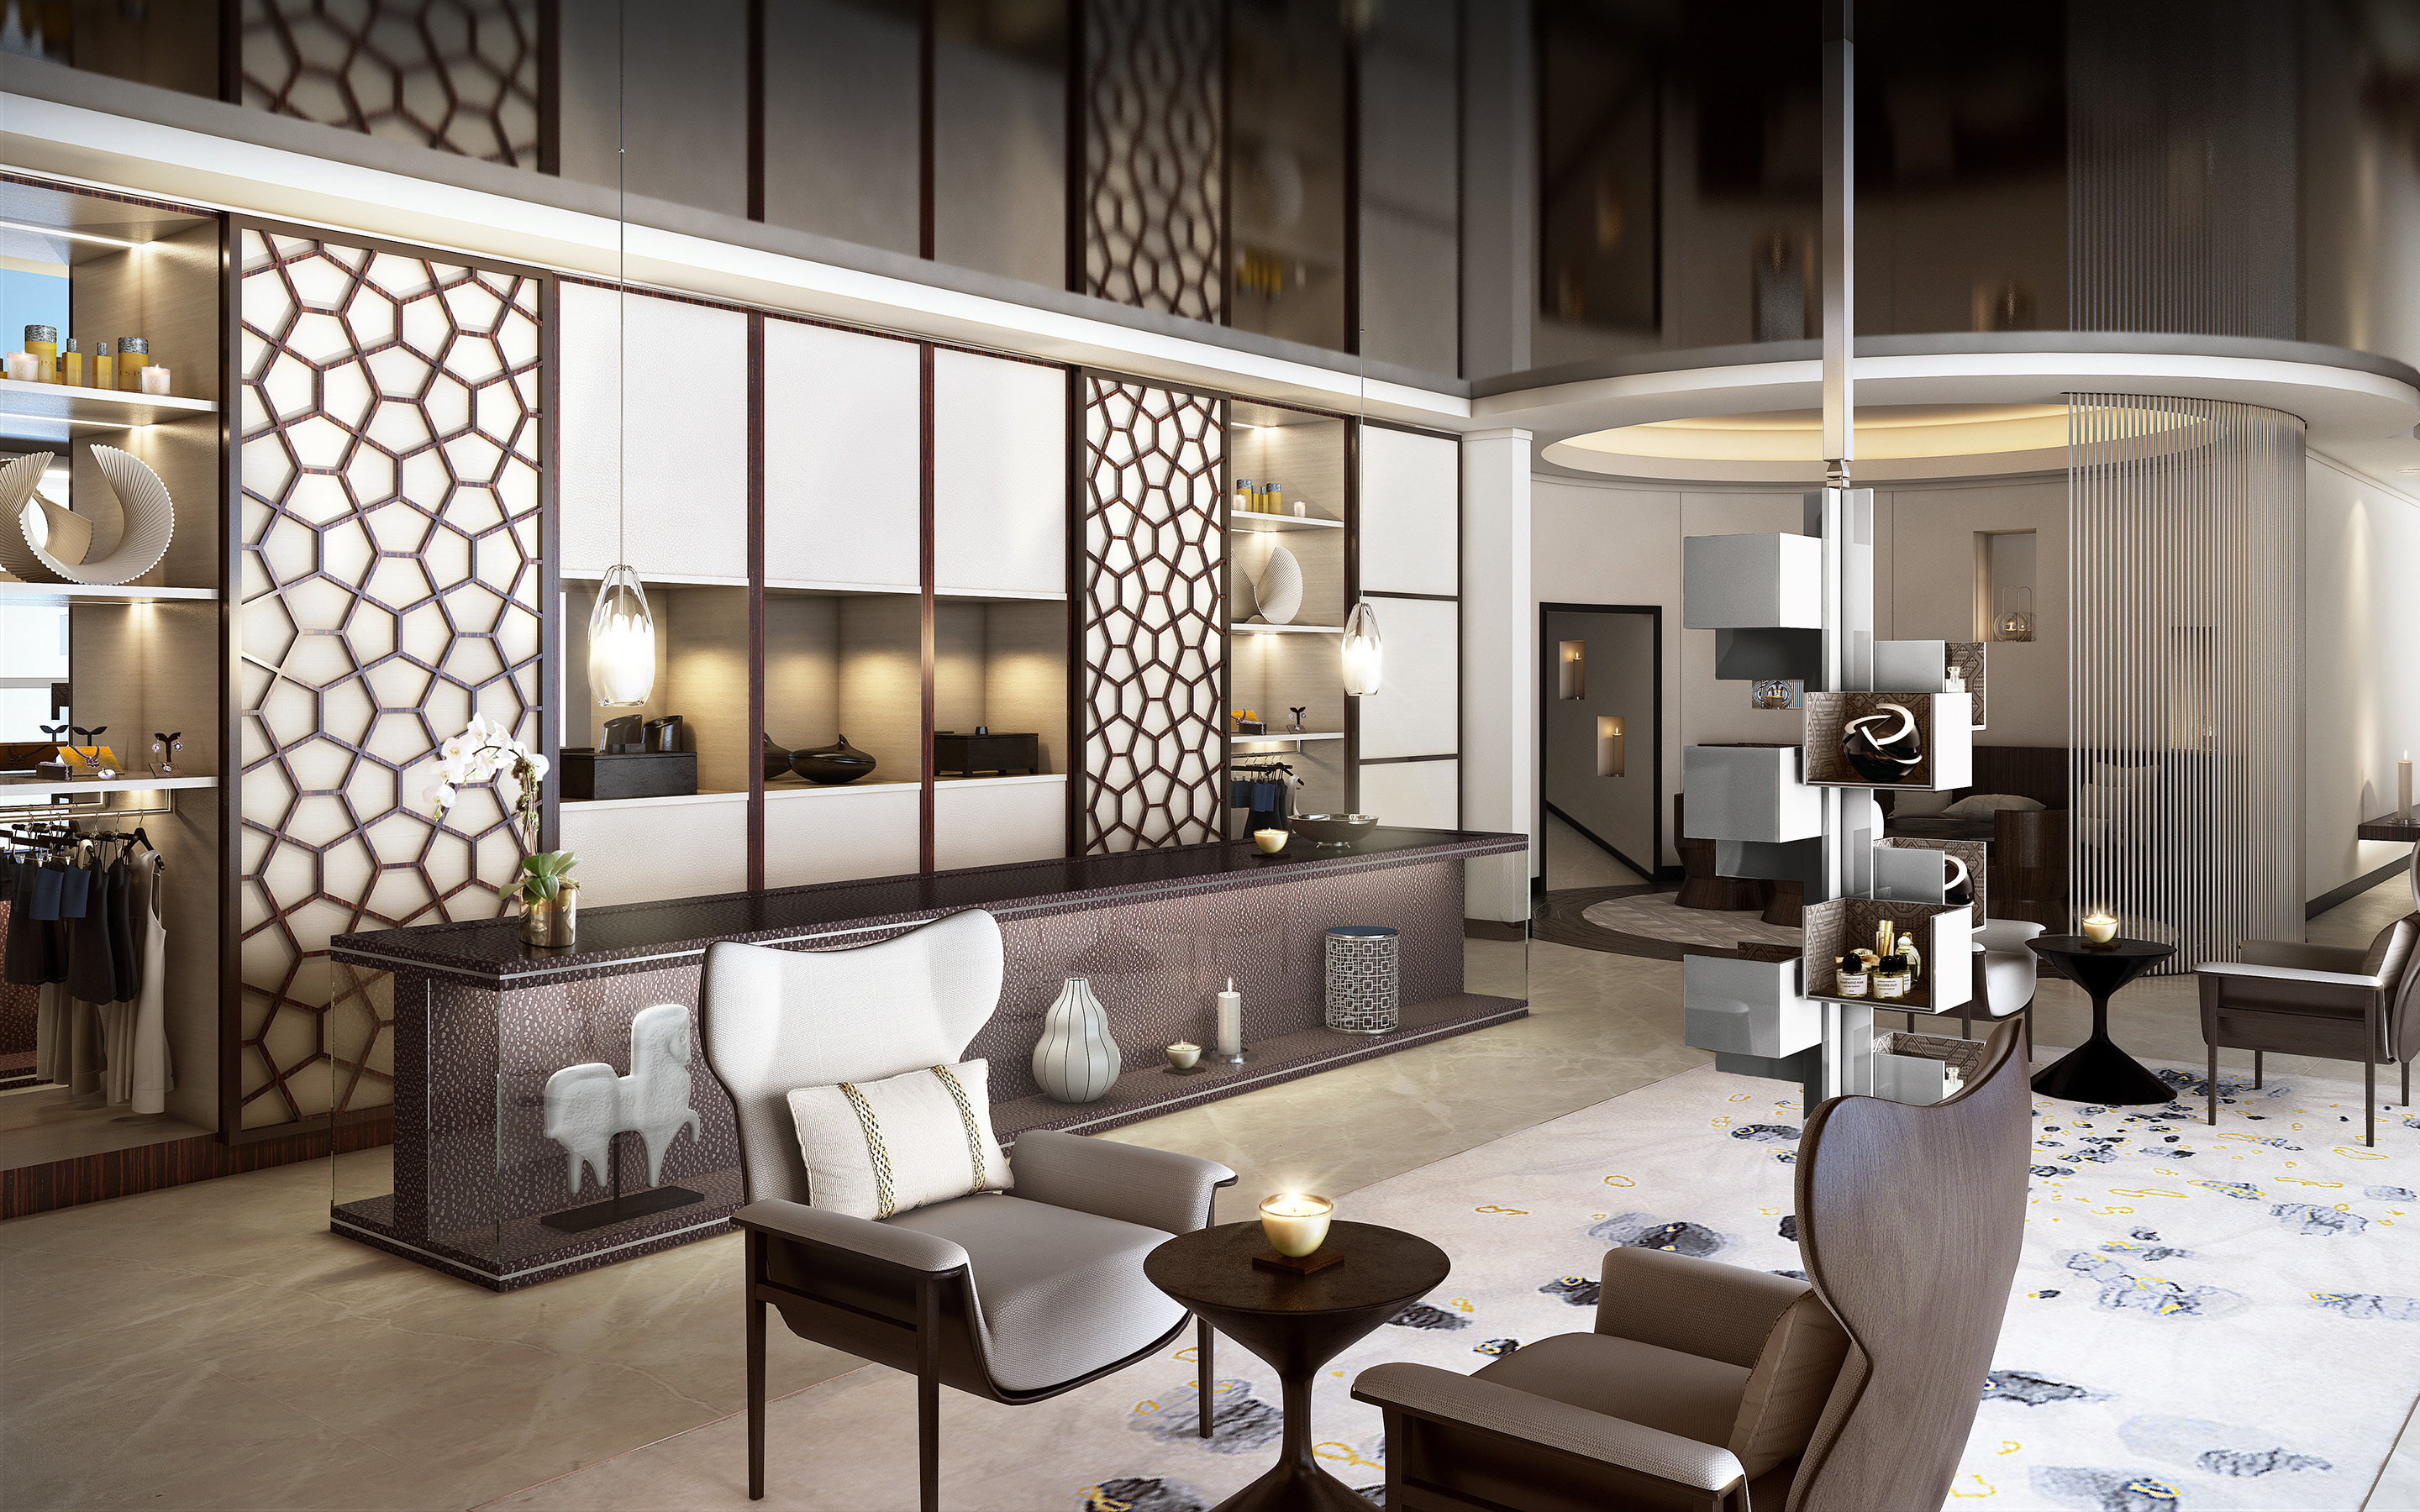 Luxury hotel qatar the gettys group for Small hotel interior design